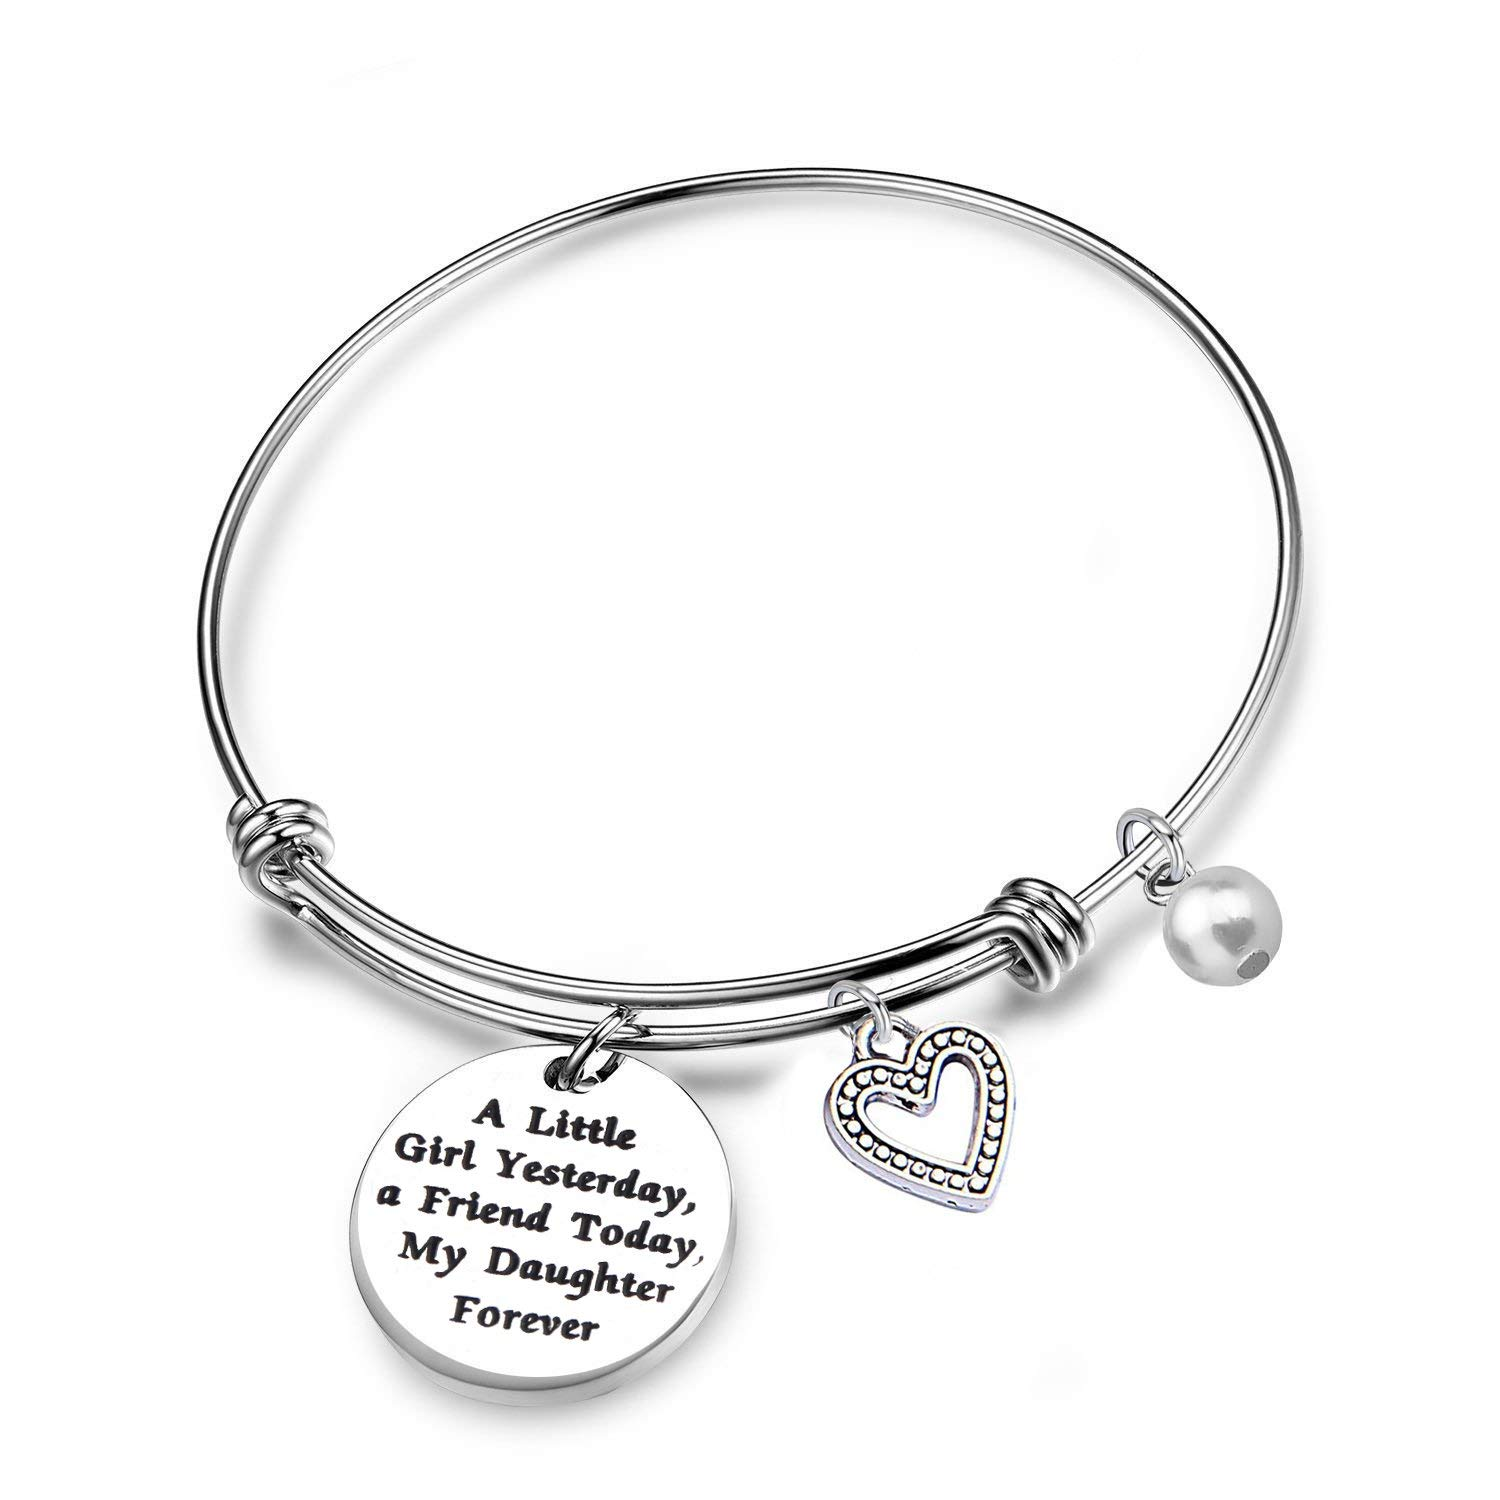 RQIER Daughter Bracelet A Little Girl Yesterday A Friend Today My Daughter Forever Bracelet Gift for Daughter Daddys Little Girl